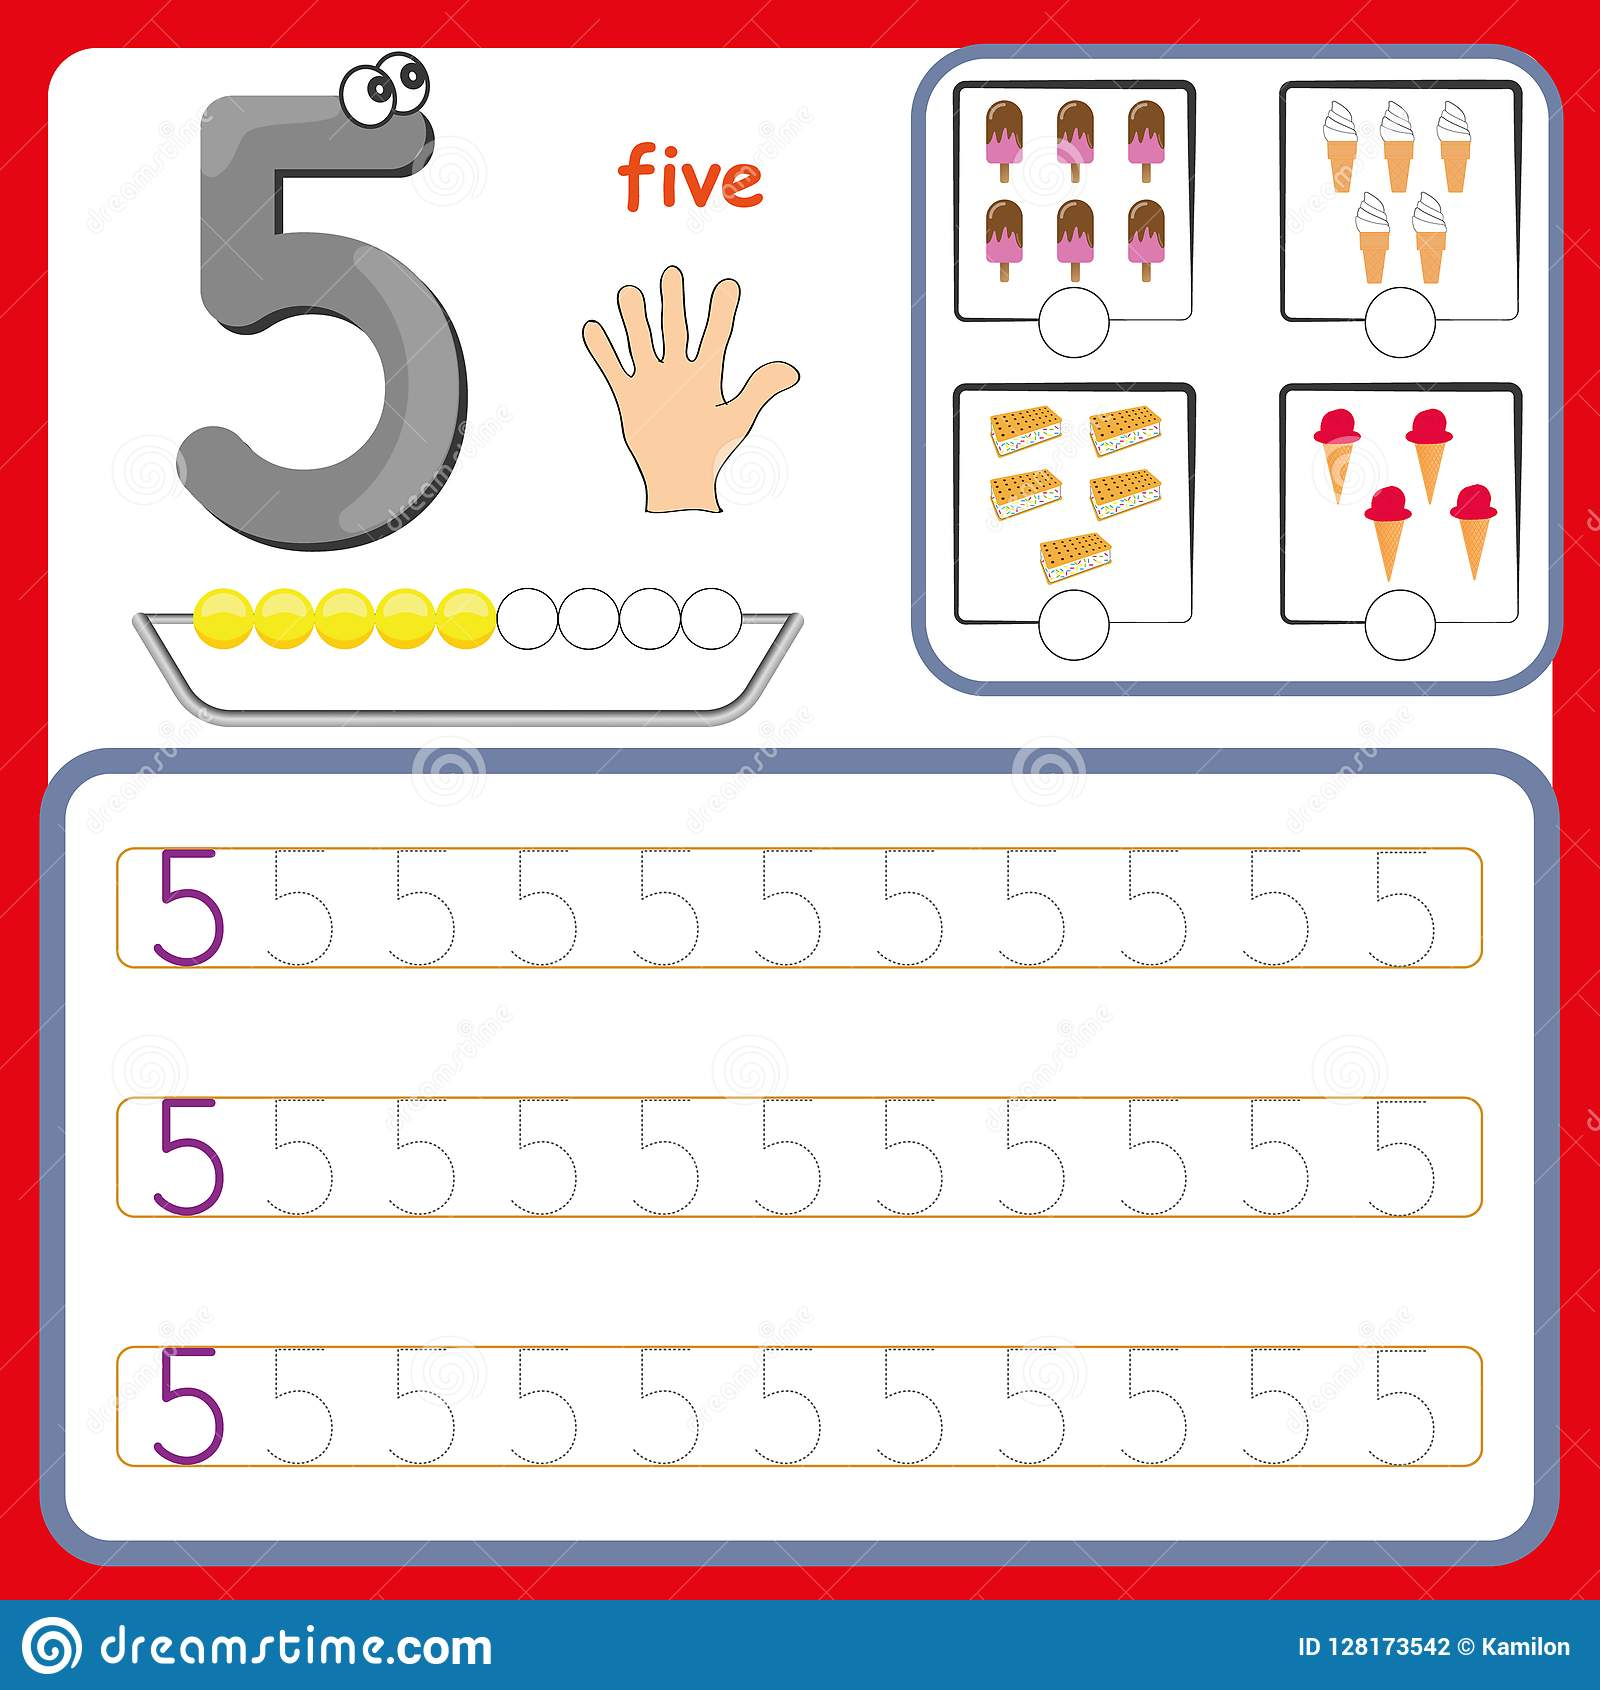 Number Cards, Counting And Writing Numbers, Learning Numbers